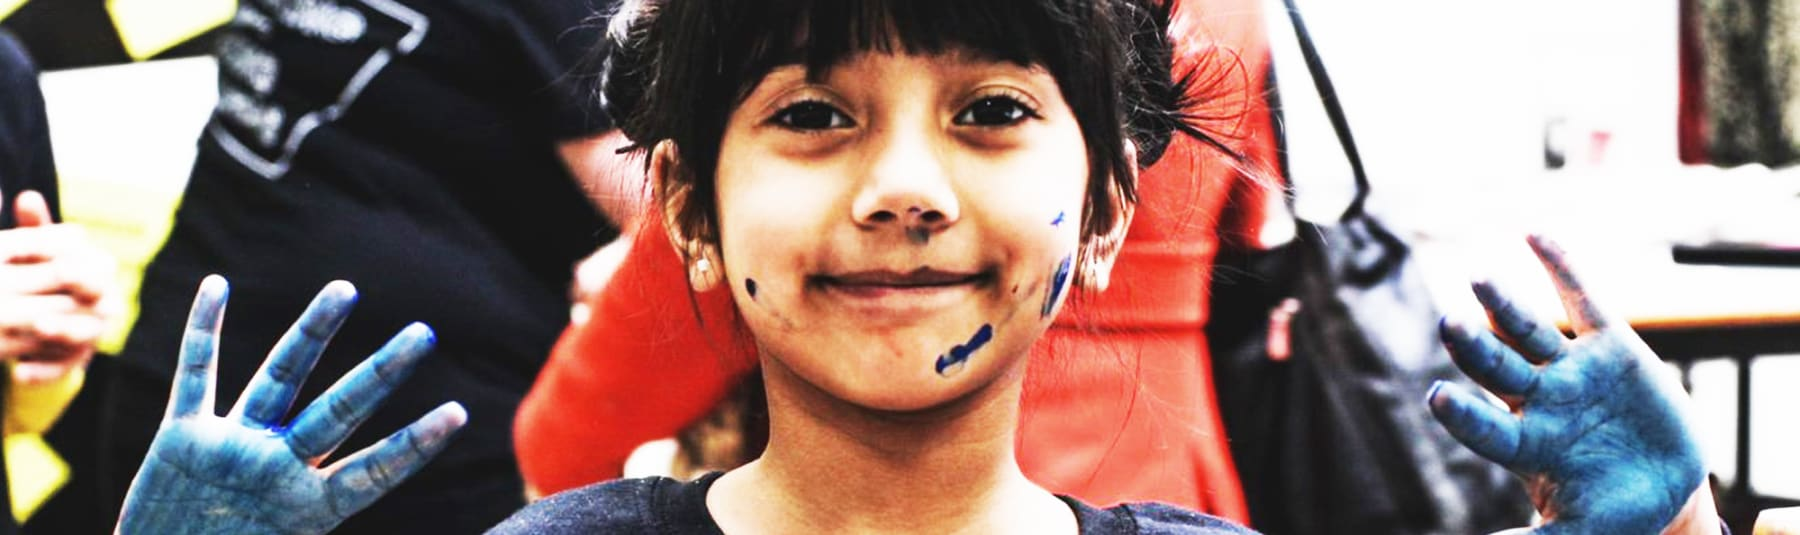 A Young girl holds up her hands showing that they are covered in blue paint, she also has a few paint marks on her face.